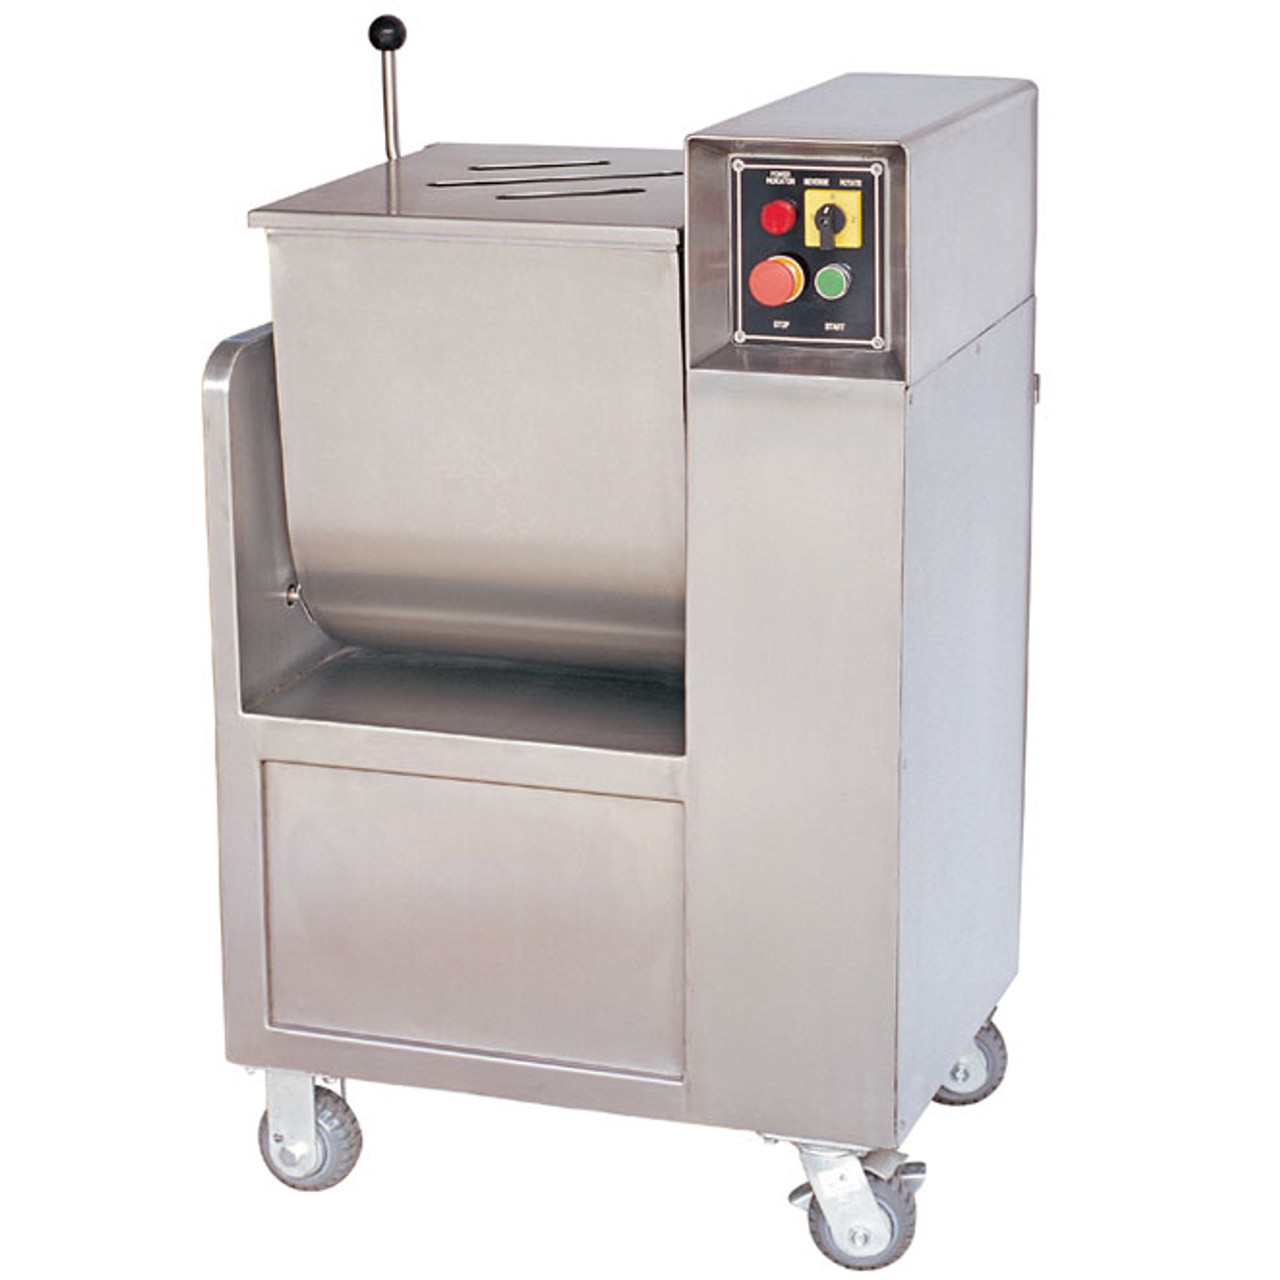 70 lb. Home-Use Commercial Style Meat Mixer